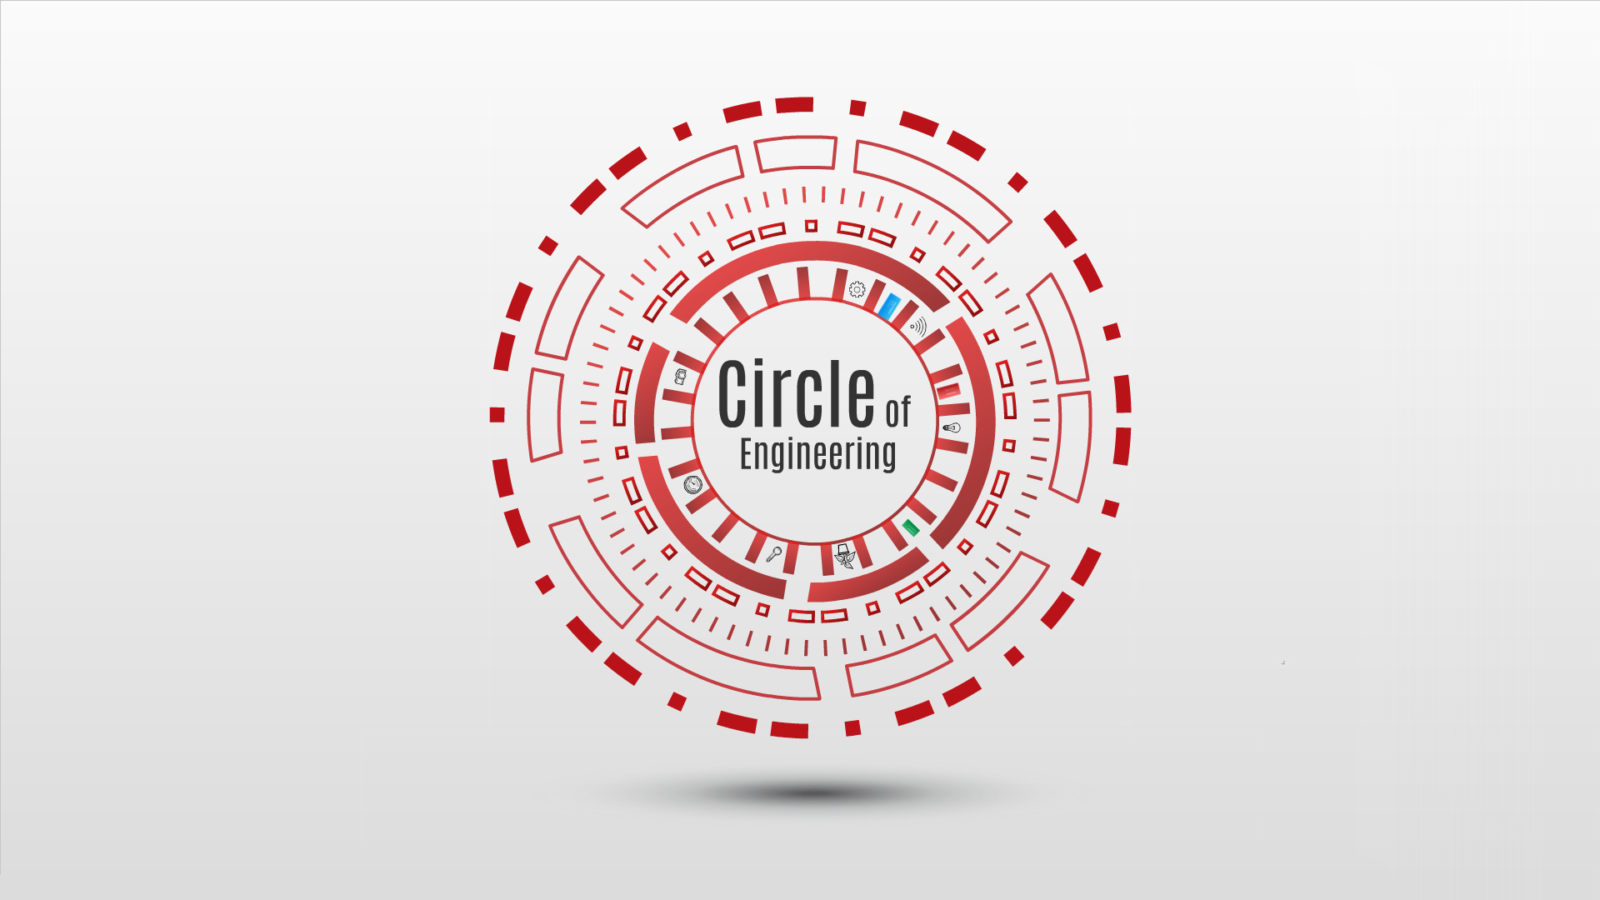 Circle of Engineering Prezi template